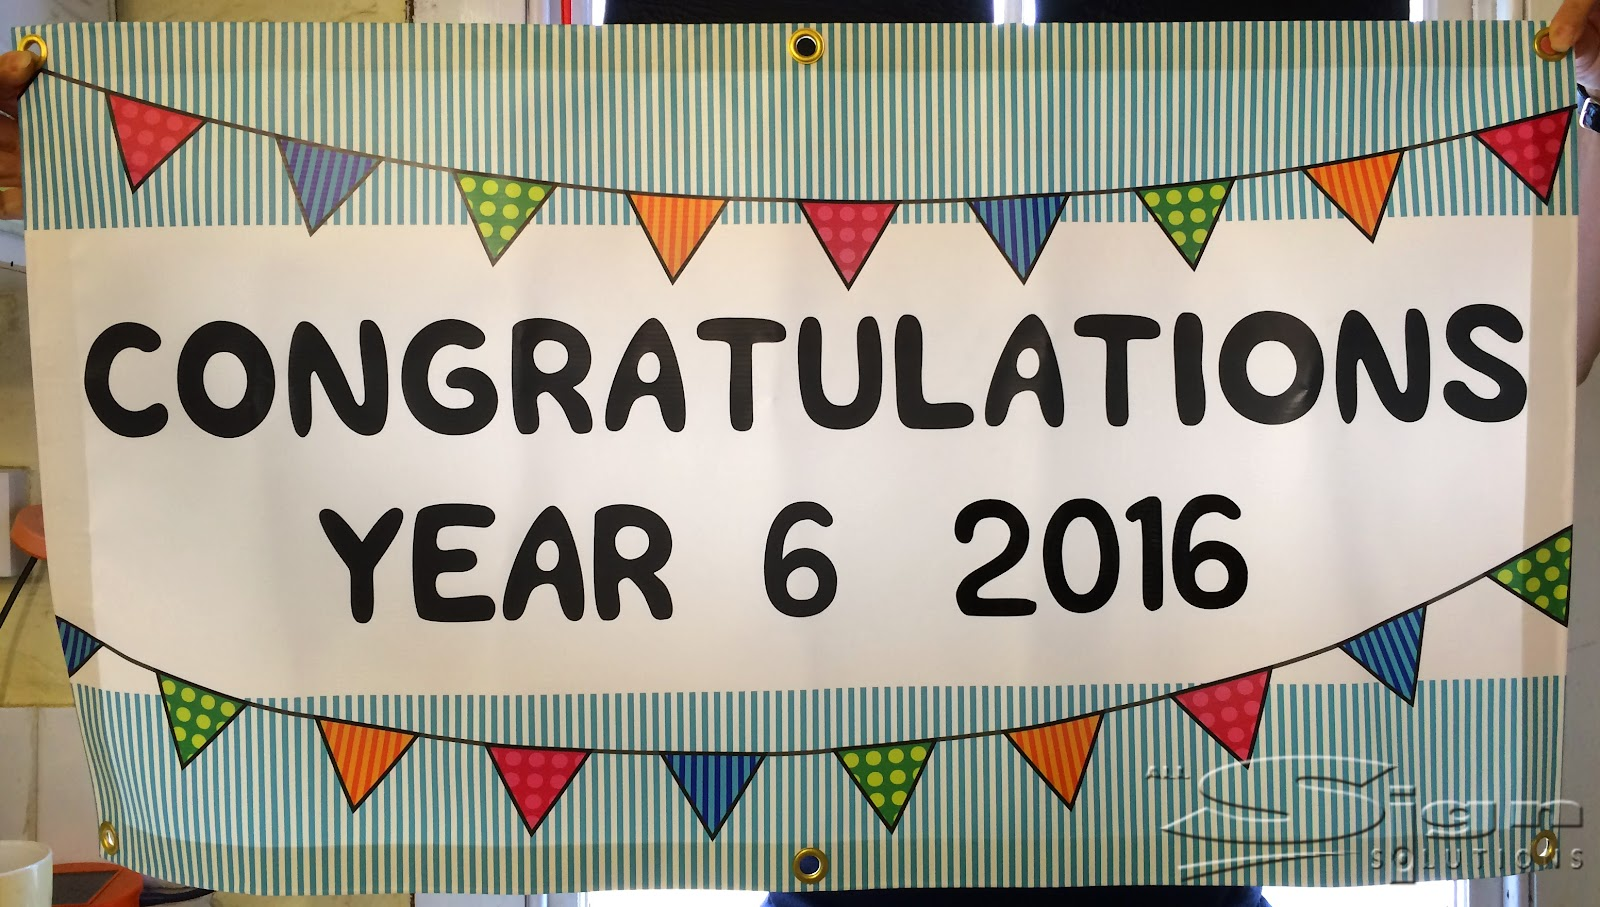 congratulations banner full colour print with vinyl letters all